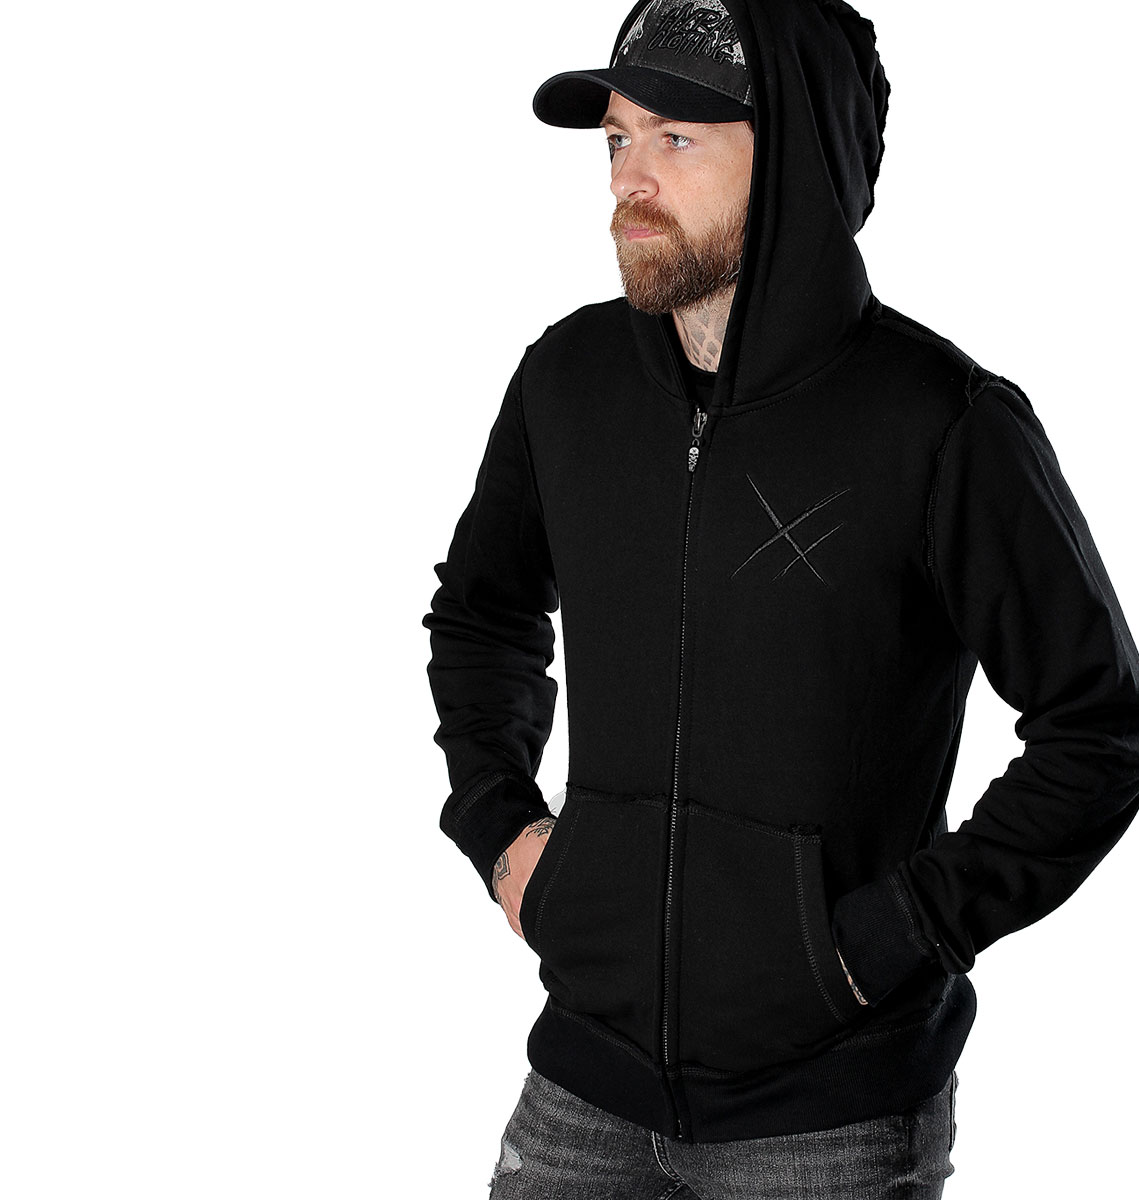 VESTE ZIPPEE HOMME ADDICT BLACK